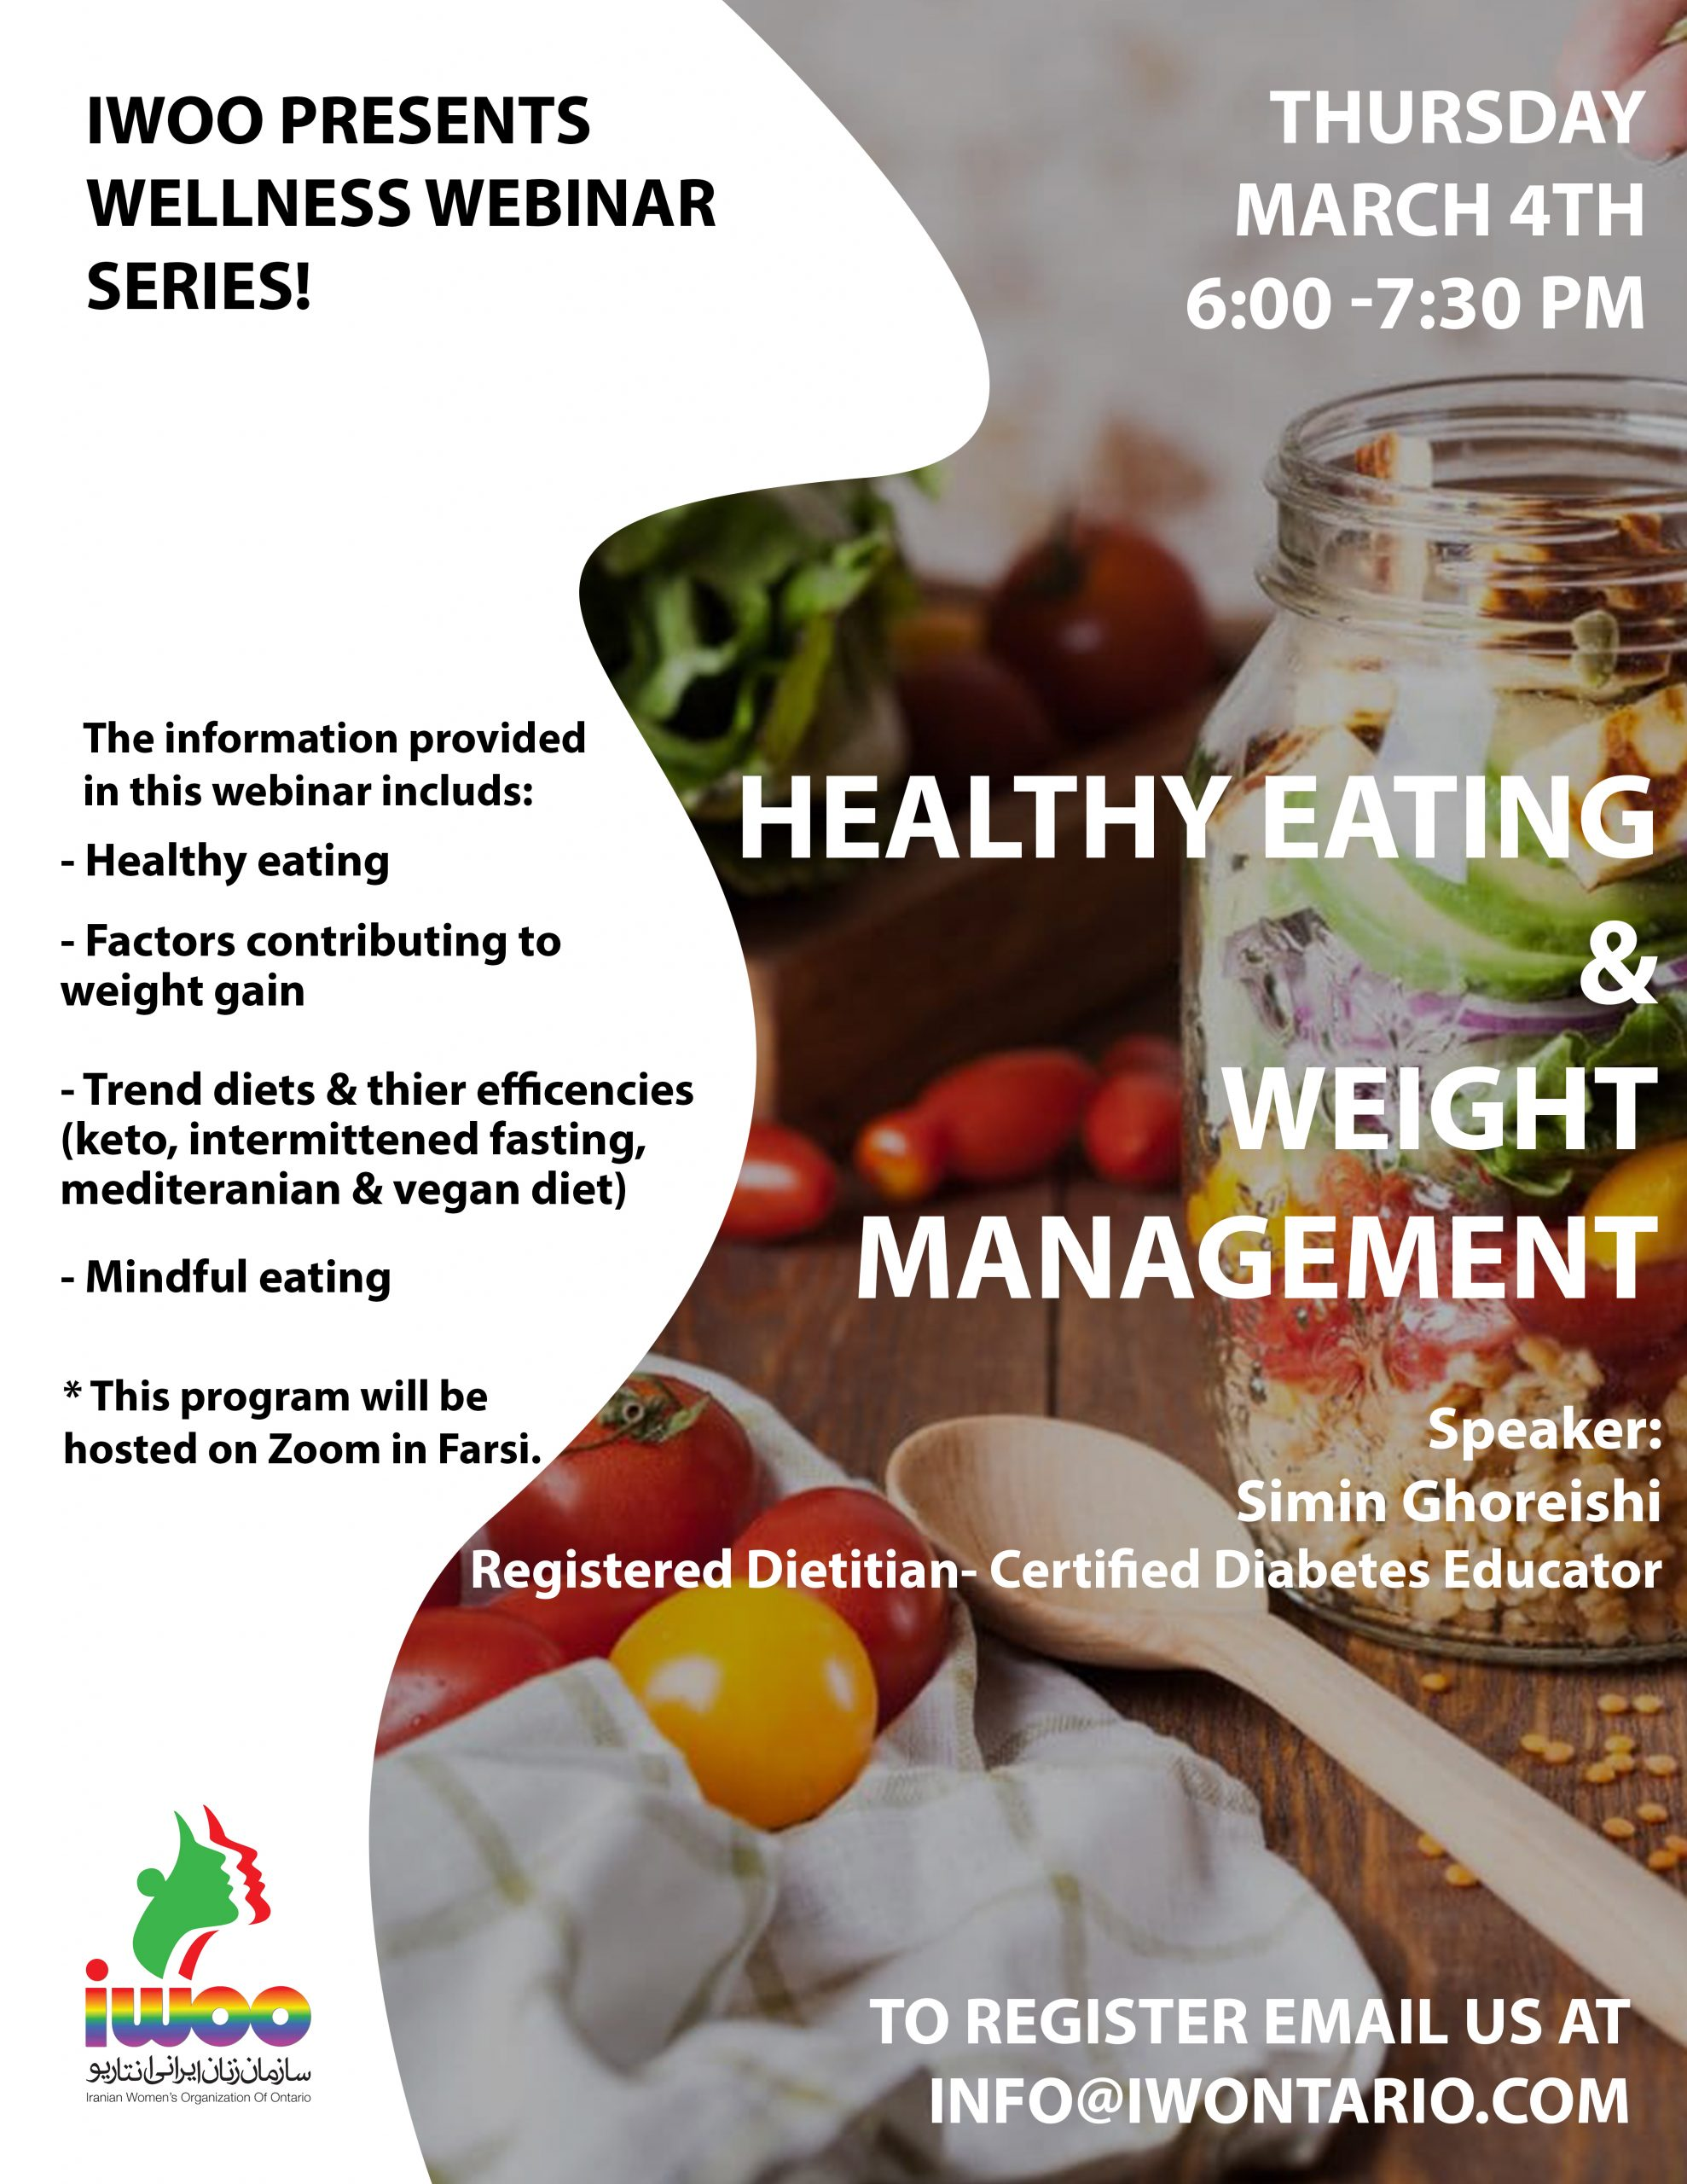 Healthy Eating & Weight Management